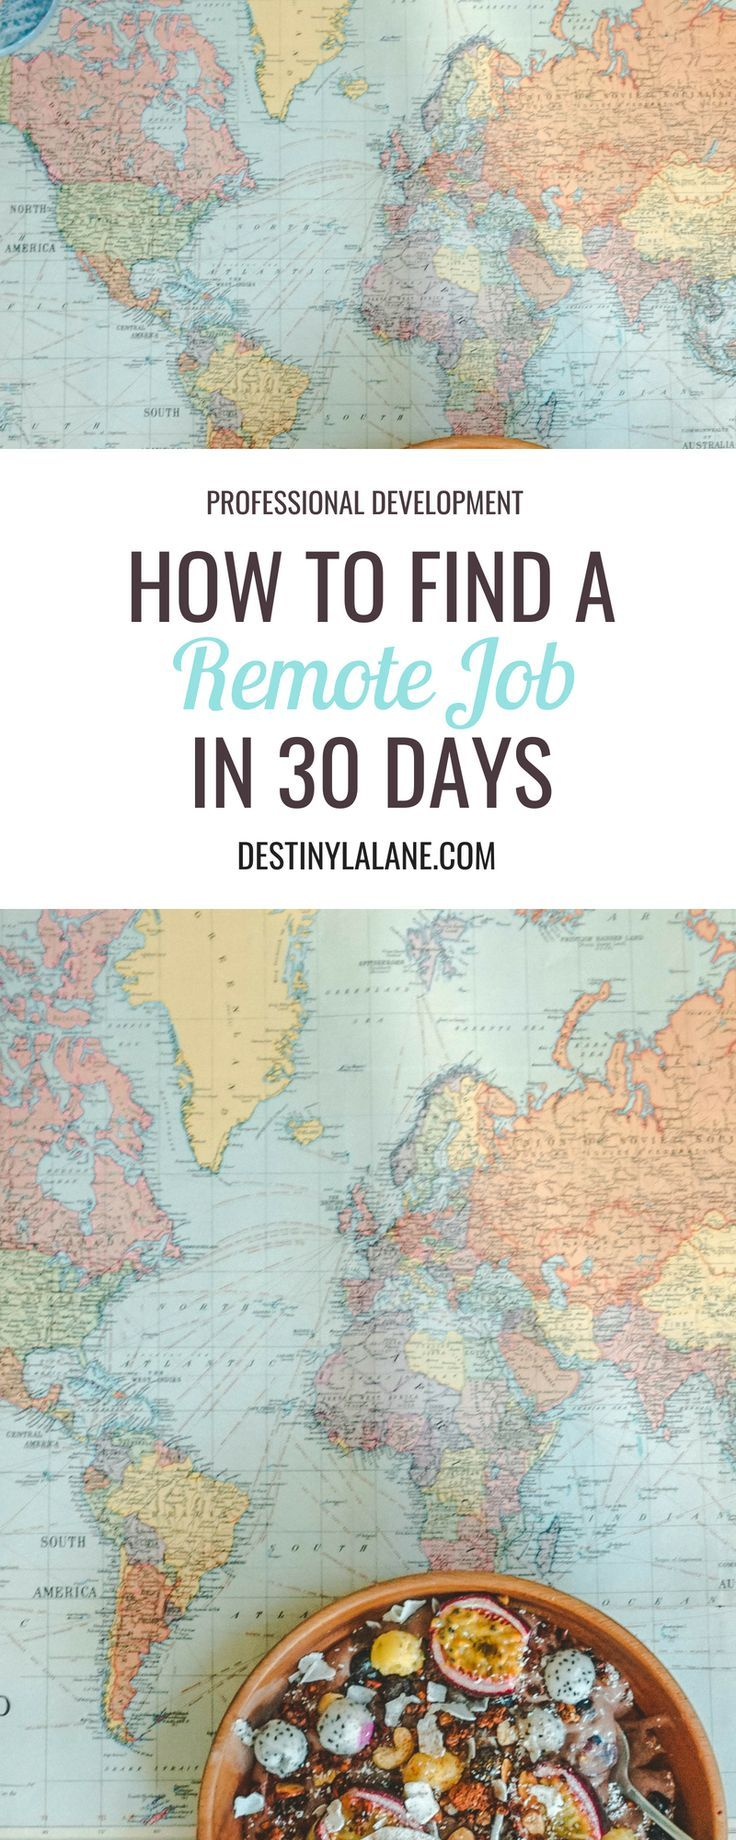 How to find a remote job in 30 days – Larrie Michelle